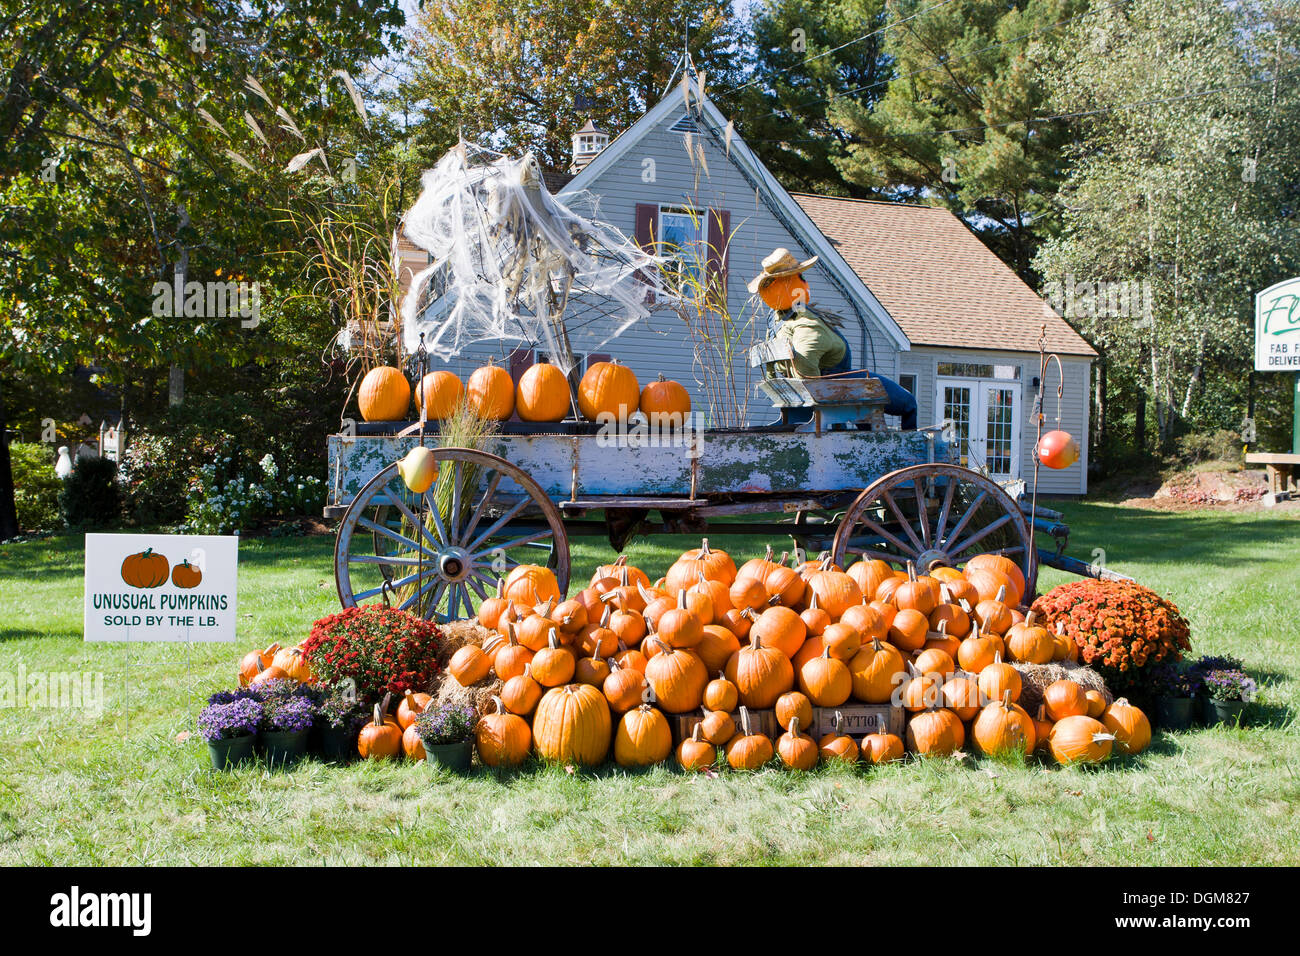 Halloween Maine New England Photos & Halloween Maine New England ...